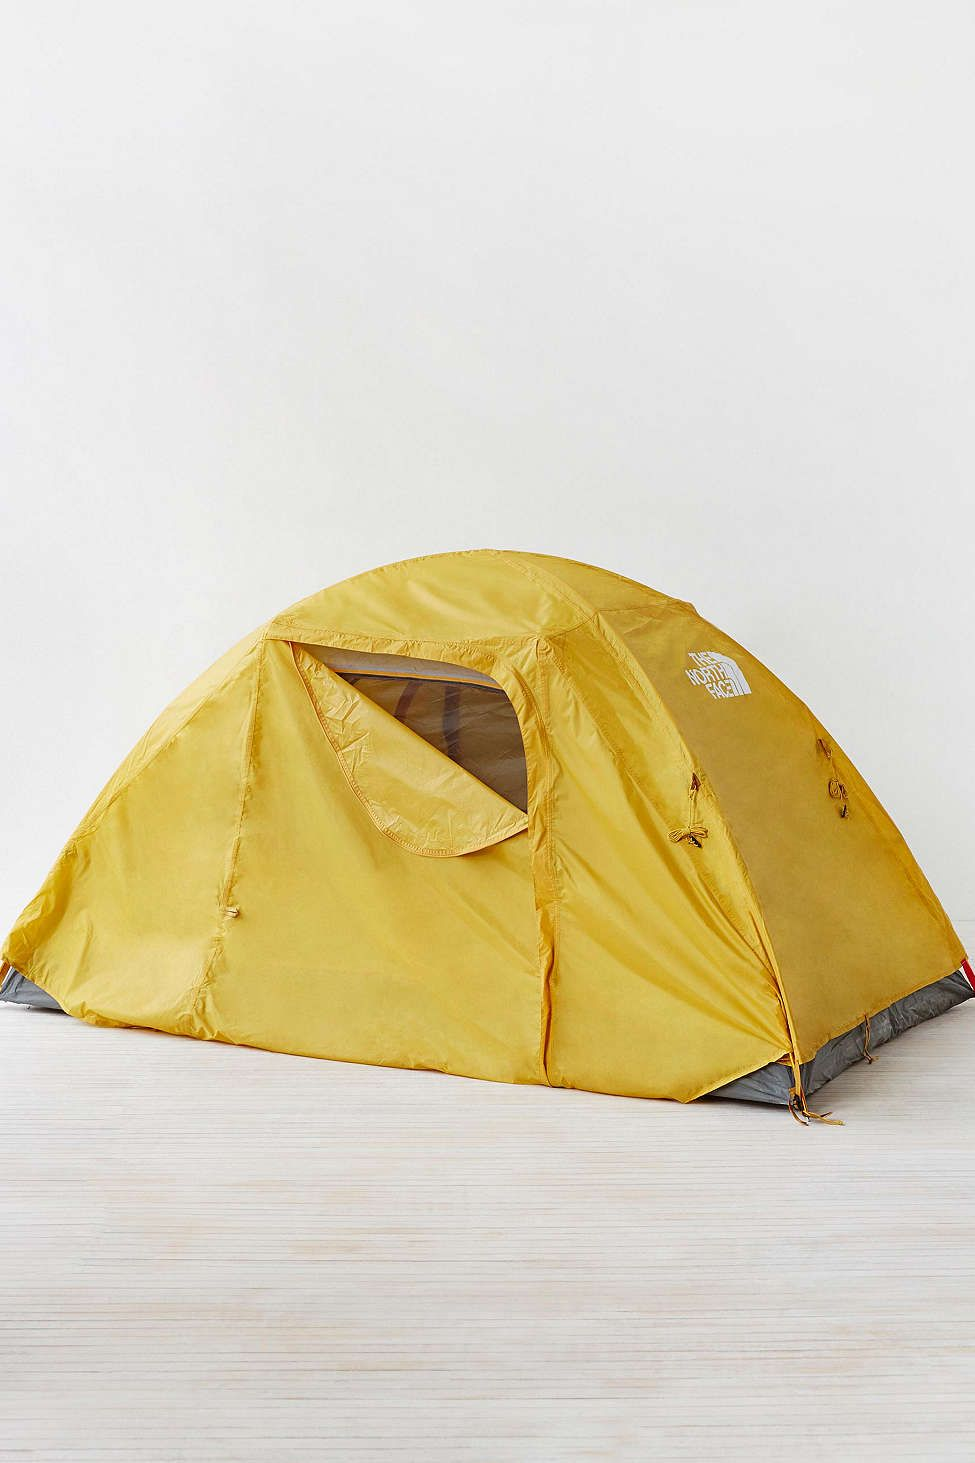 The North Face Stormbreak 2-Person Tent & The North Face Stormbreak 2-Person Tent | sport | Pinterest ...